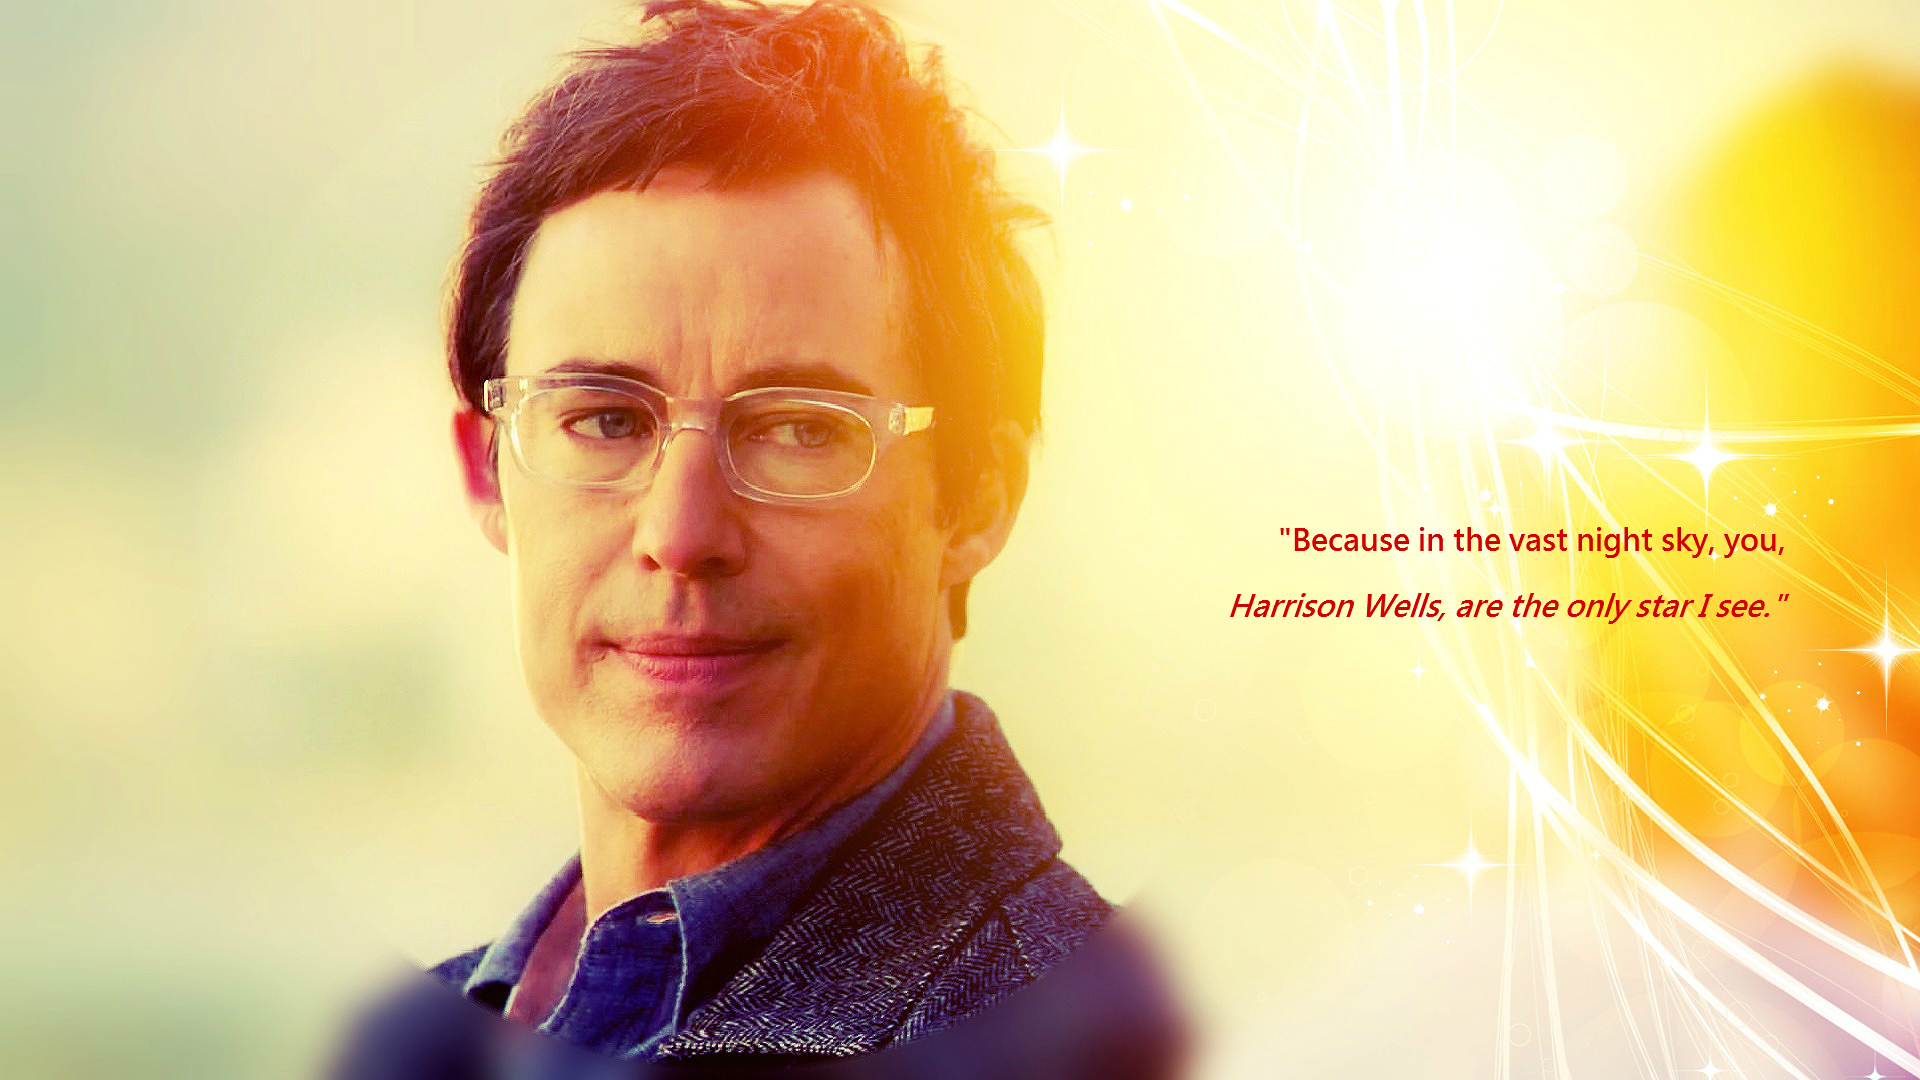 Eobard Thawne Dr Harrison Wells Images HD Wallpaper And Background Photos